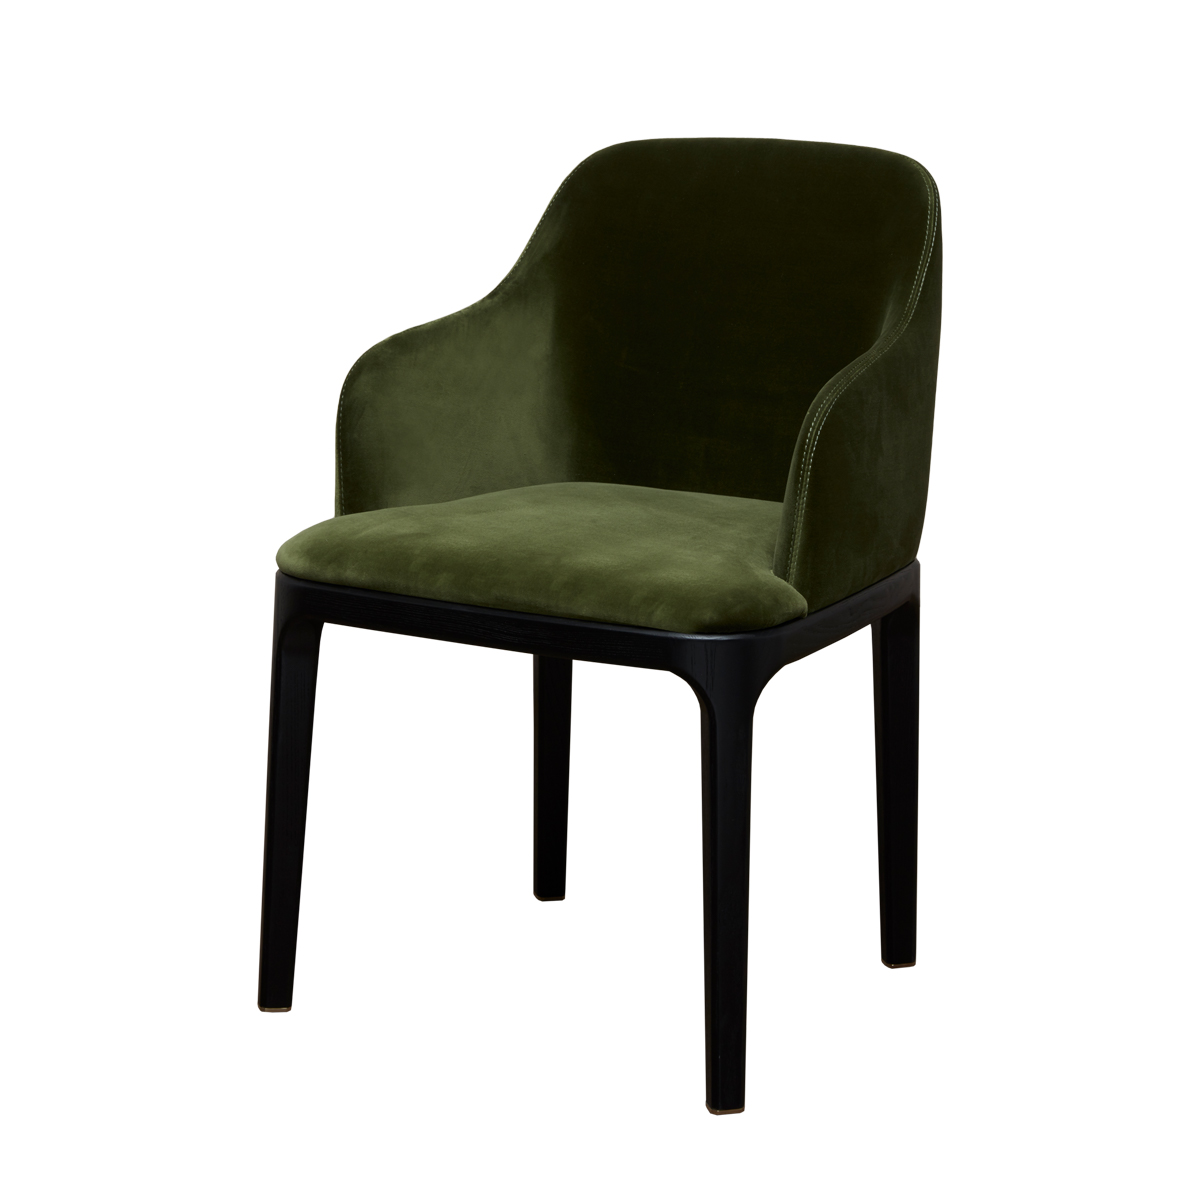 Gemma Dining Chair X – Amazon Green